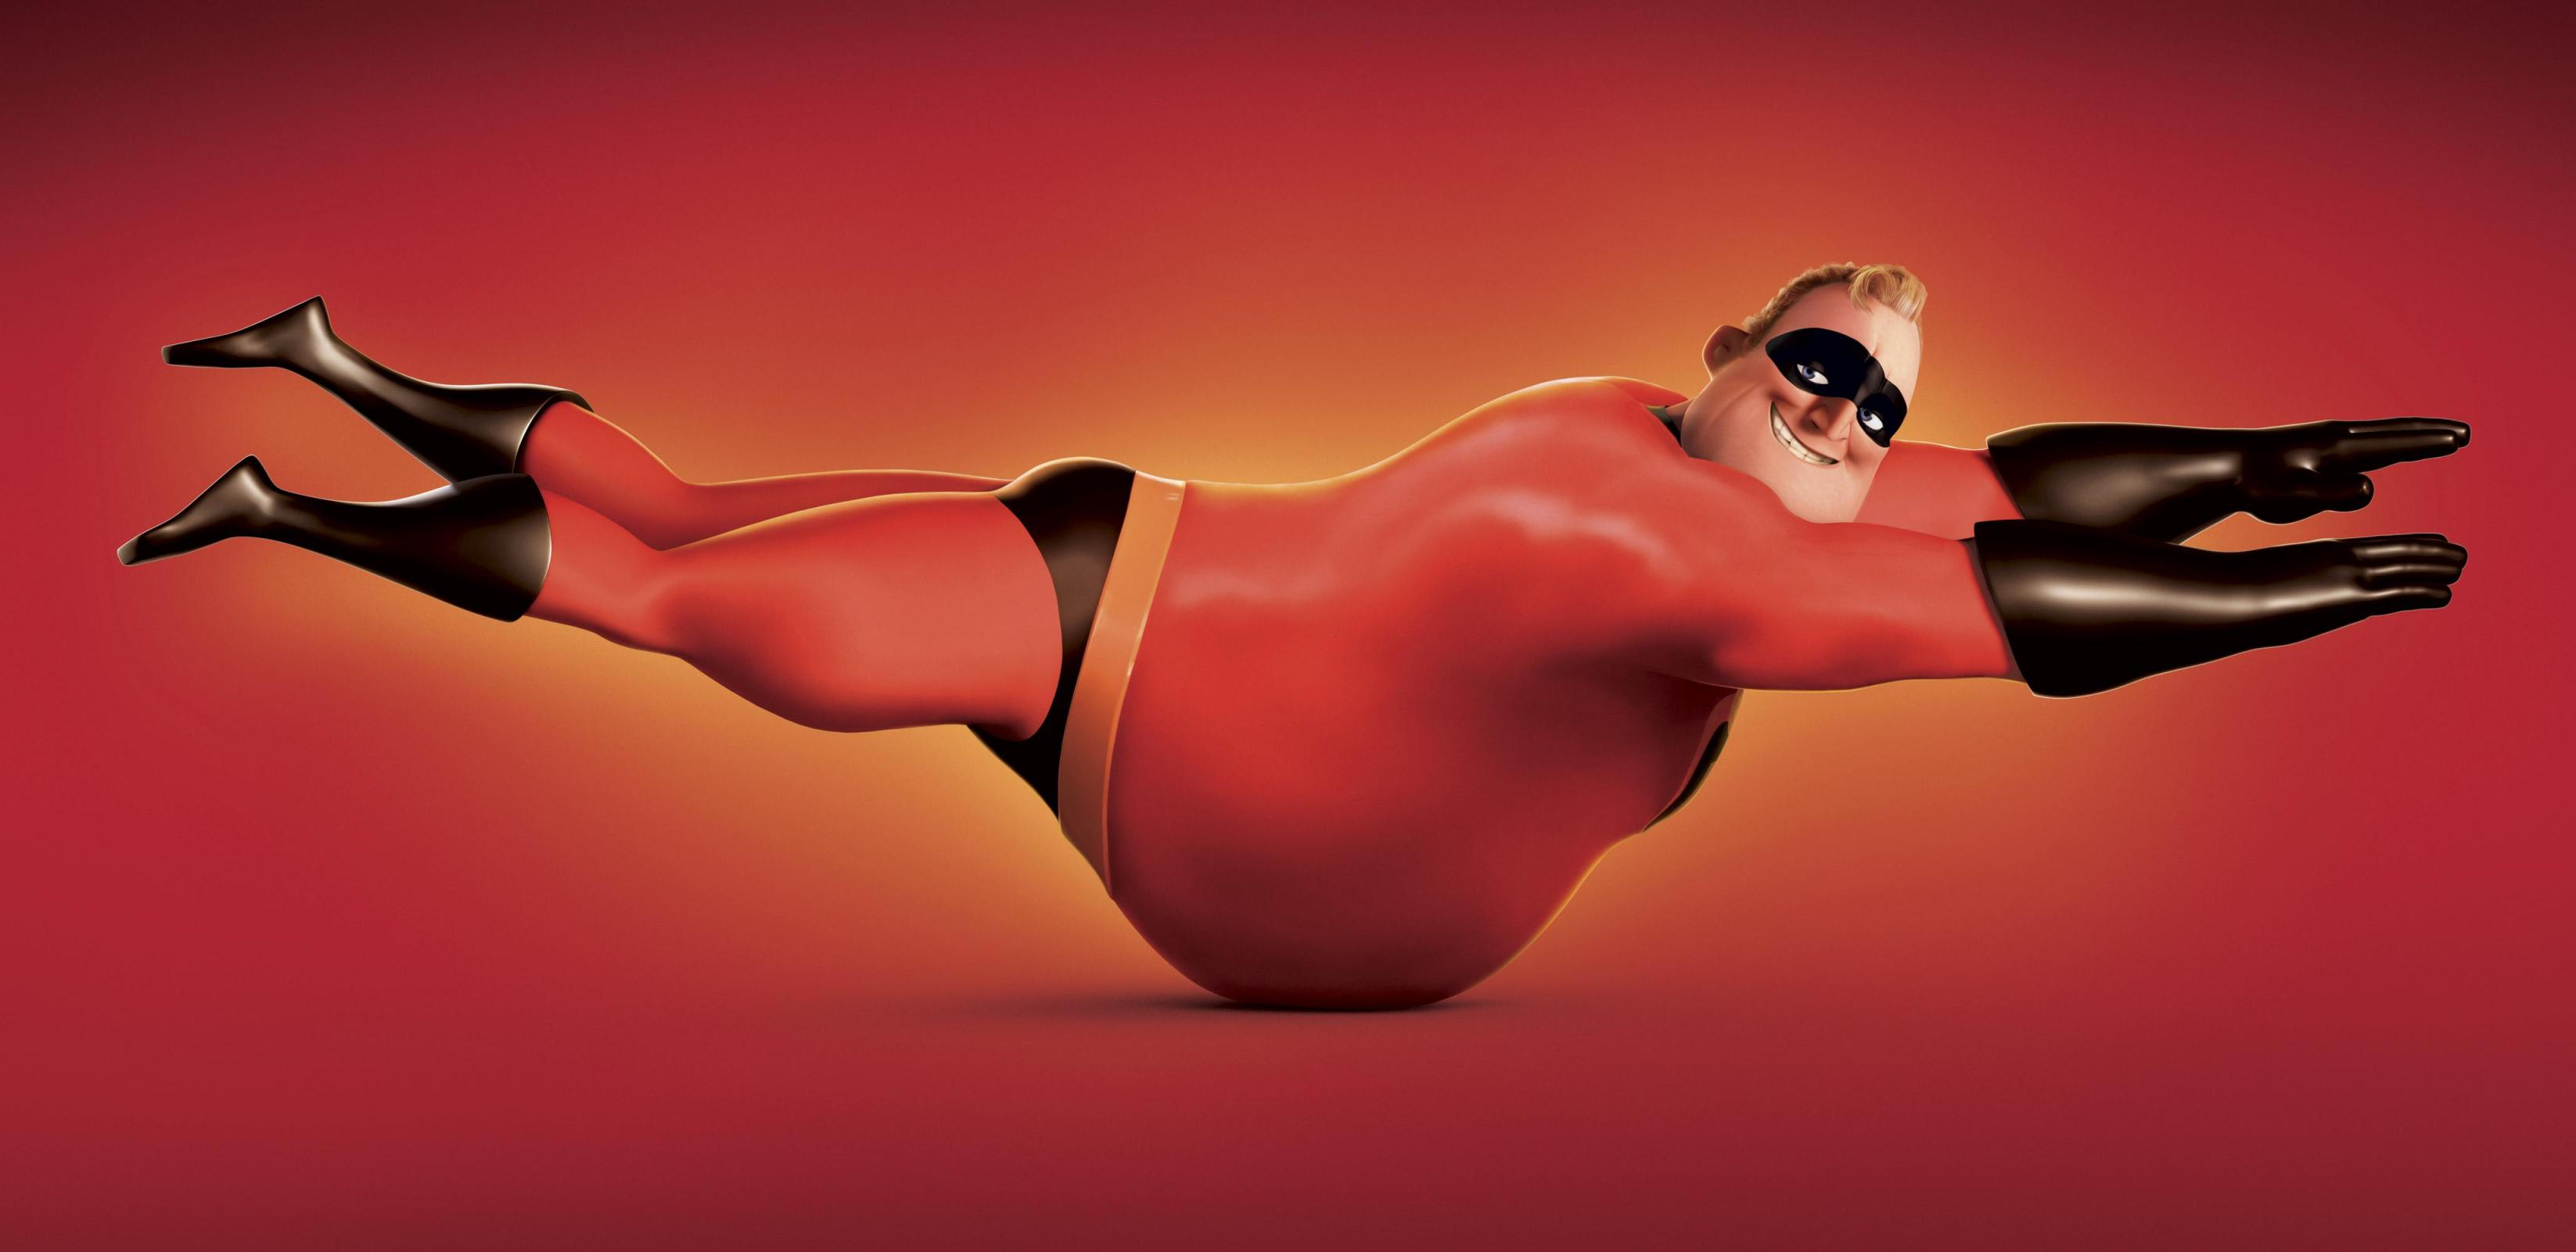 Gli Incredibili - Incredibles - Mr. Incredible